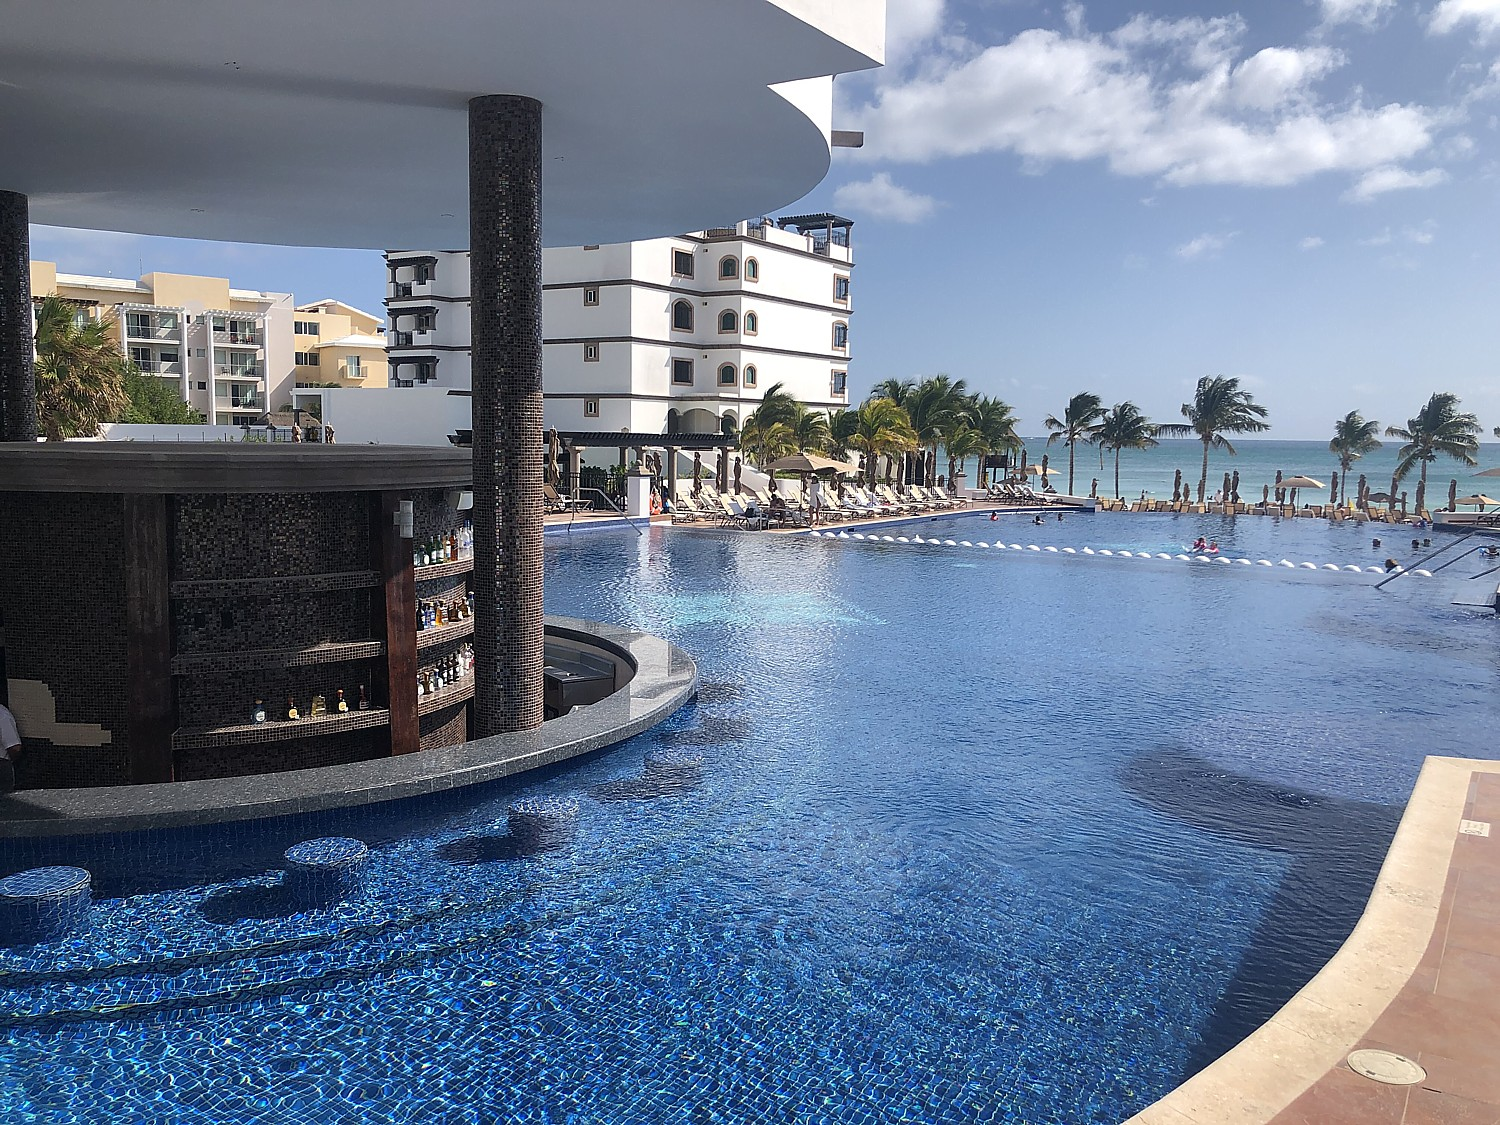 Grand Residences Riviera Maya: A Luxury All-Inclusive Done Right